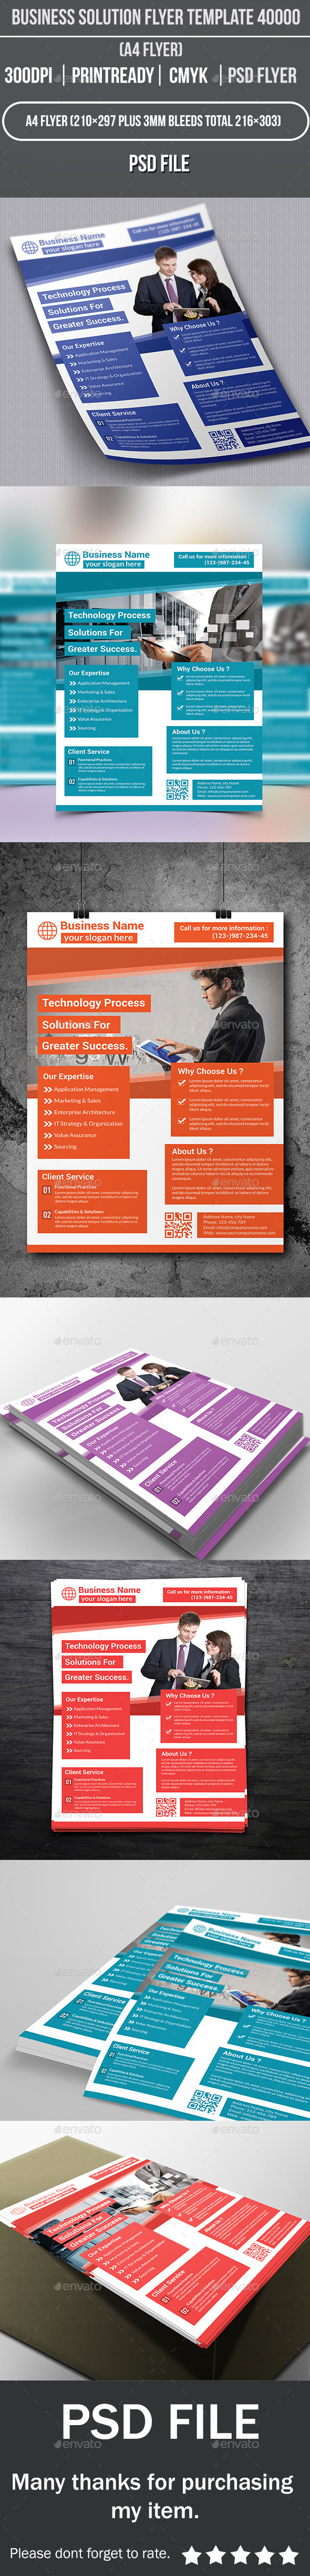 GraphicRiver Business Solution Flyer Template 40000 10429108